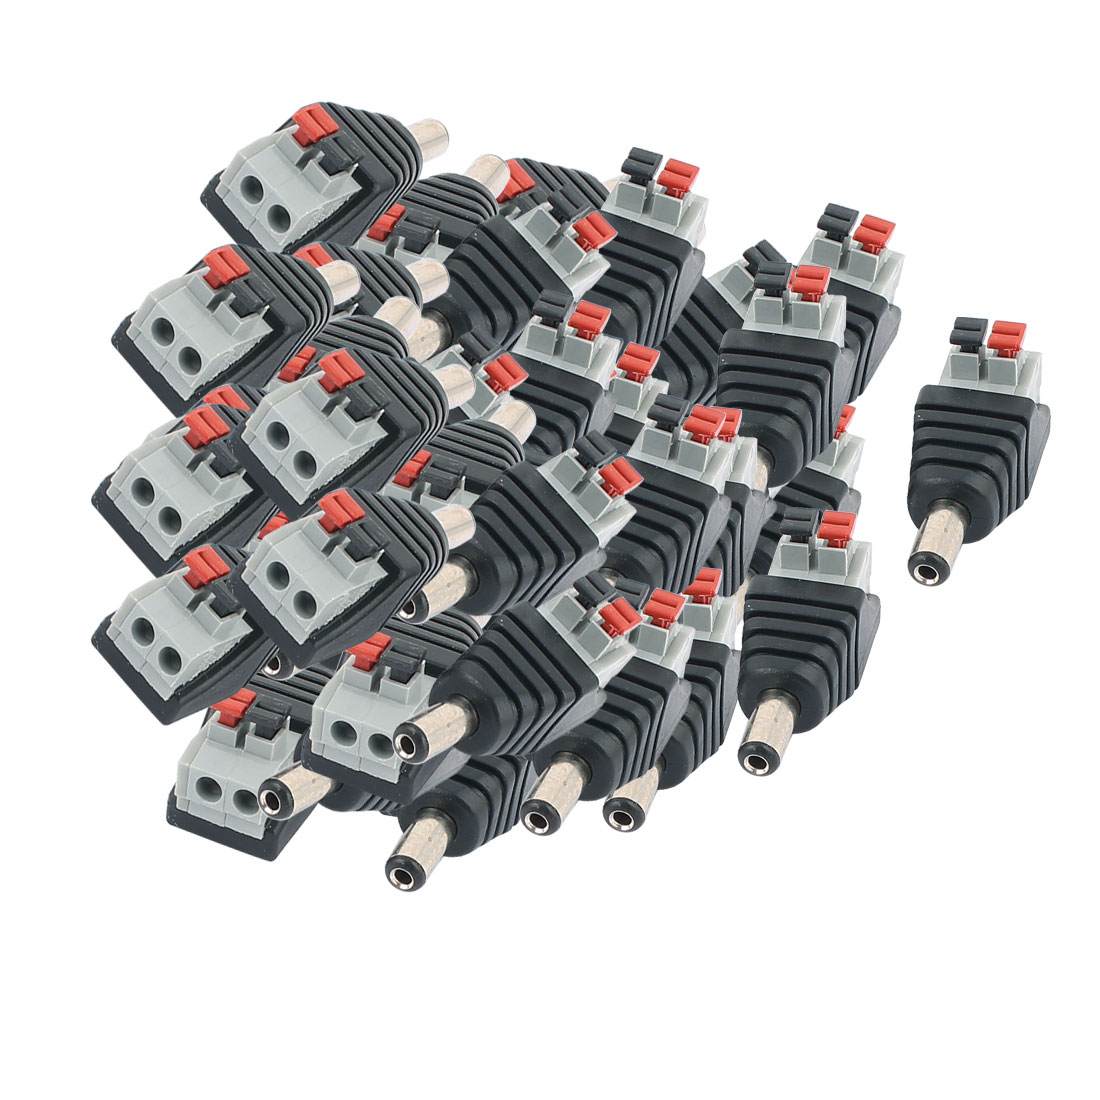 50Pcs CCTV Camera Clip Type Terminal Block 2.1x5.5mm DC Power Male Jack Connector